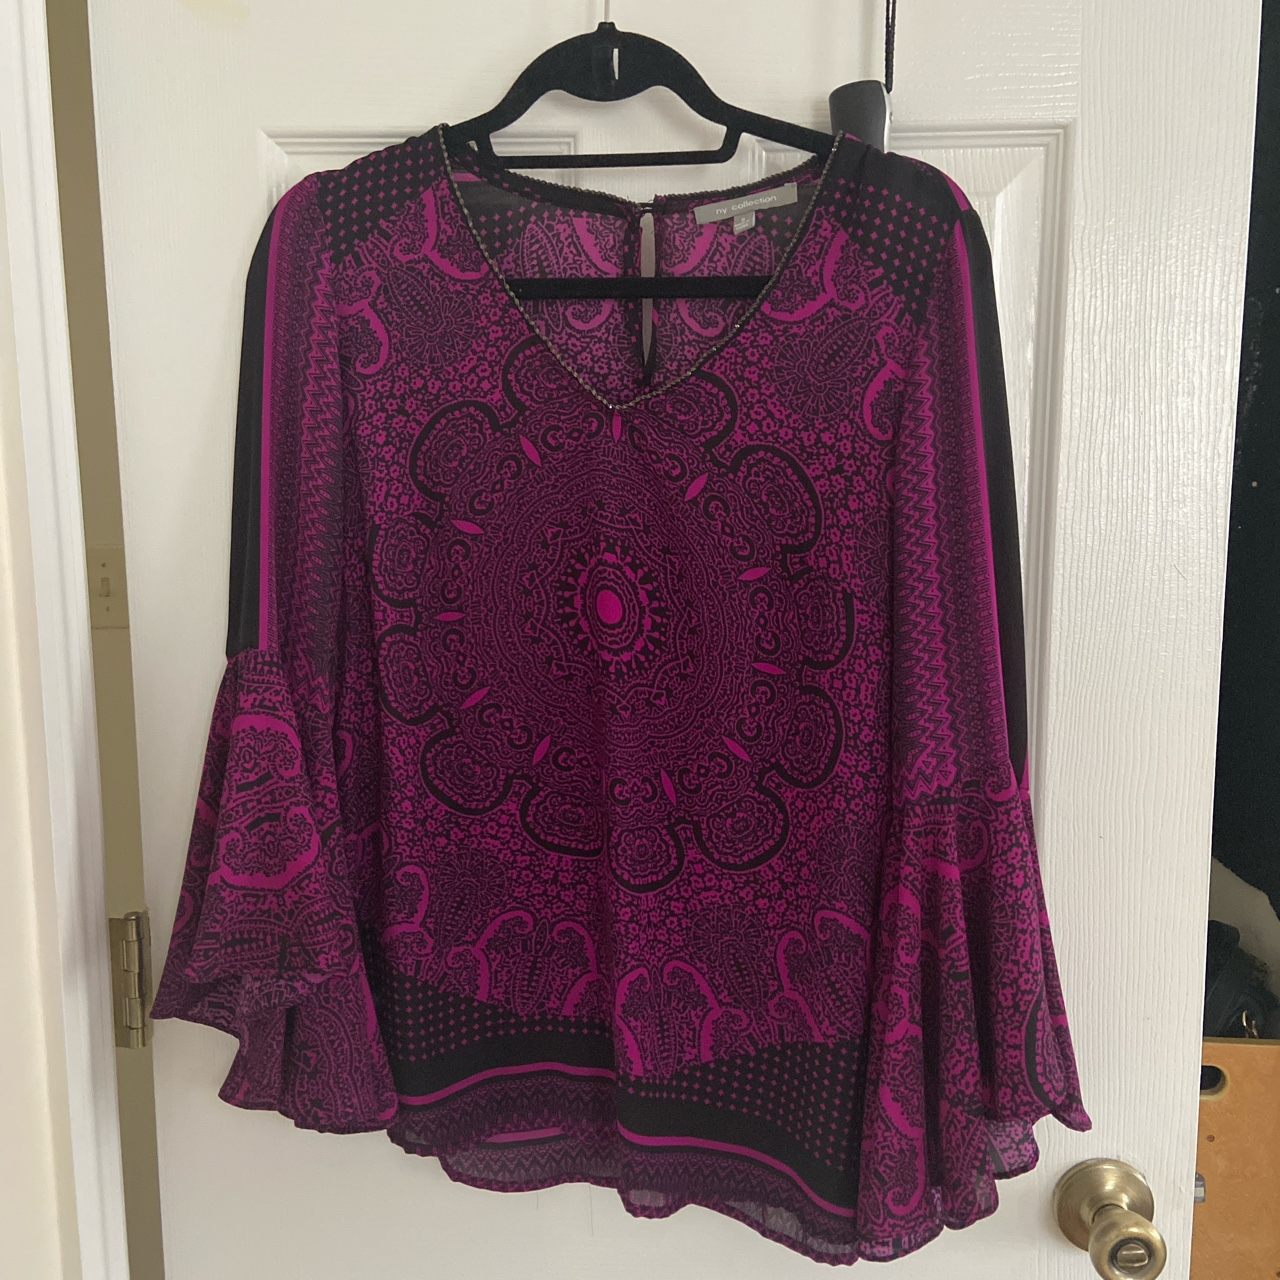 Product Image 1 - Hippie boho top. Honestly really